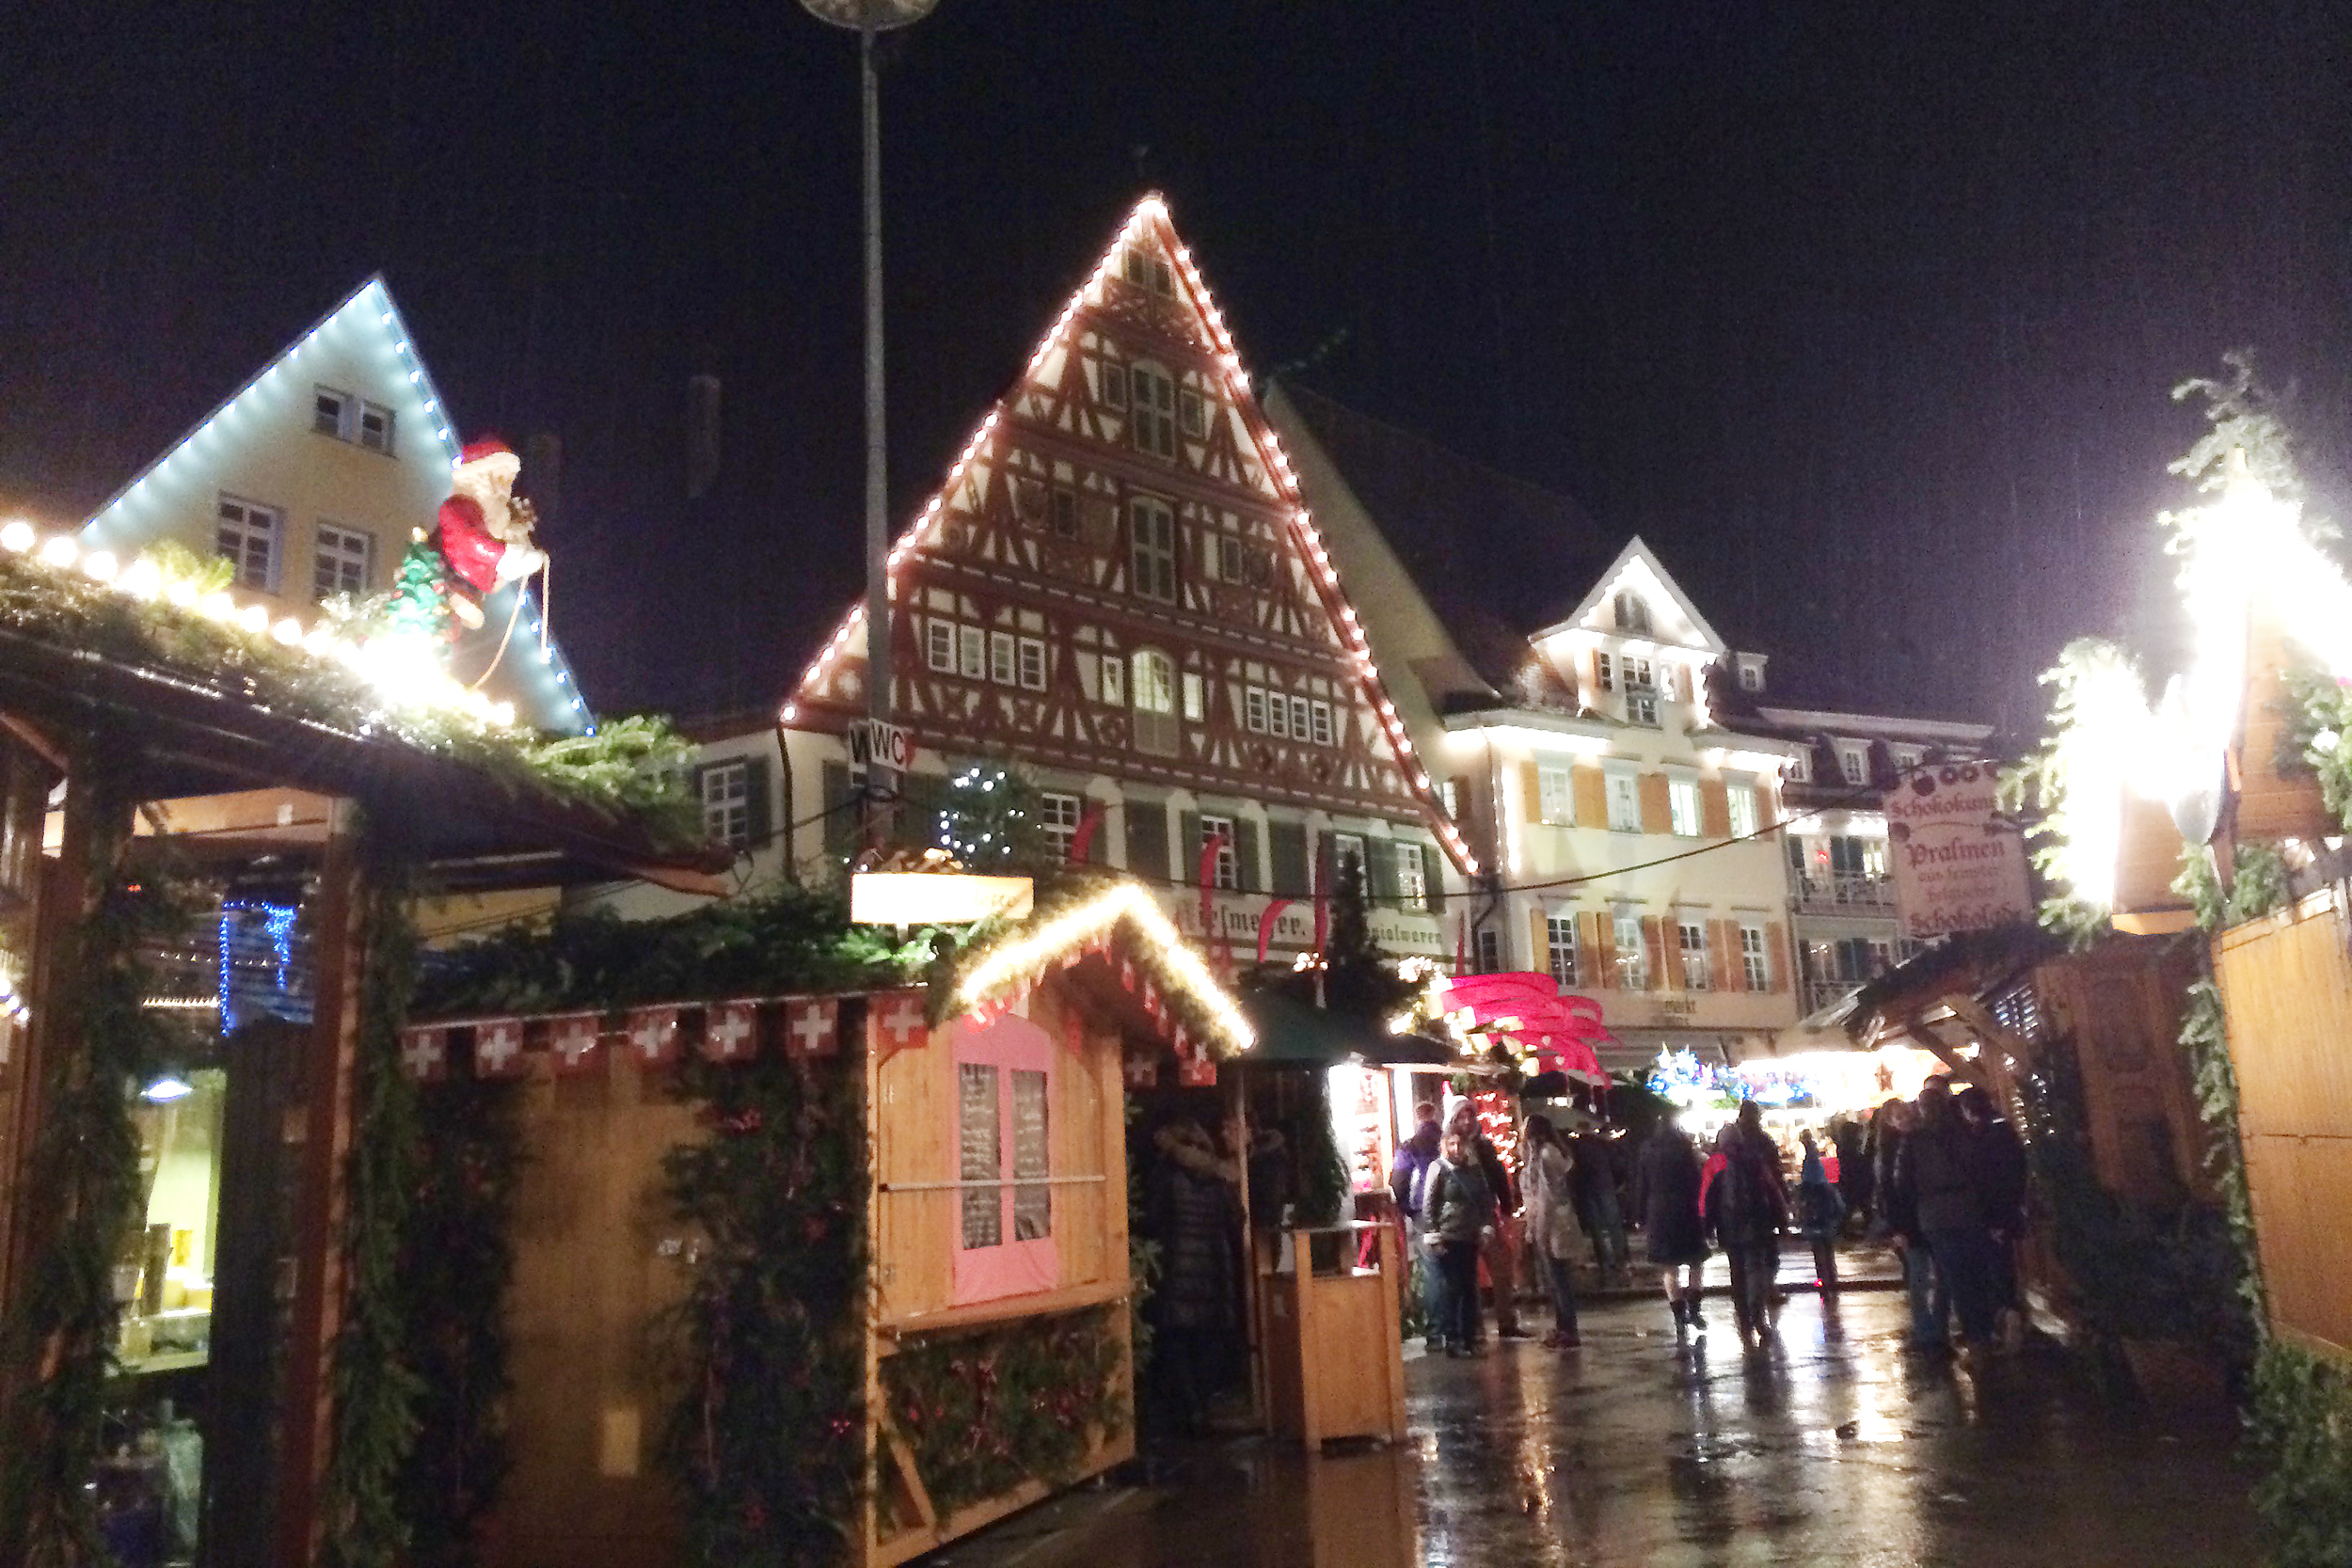 It looks like the perfect Gingerbread town :)